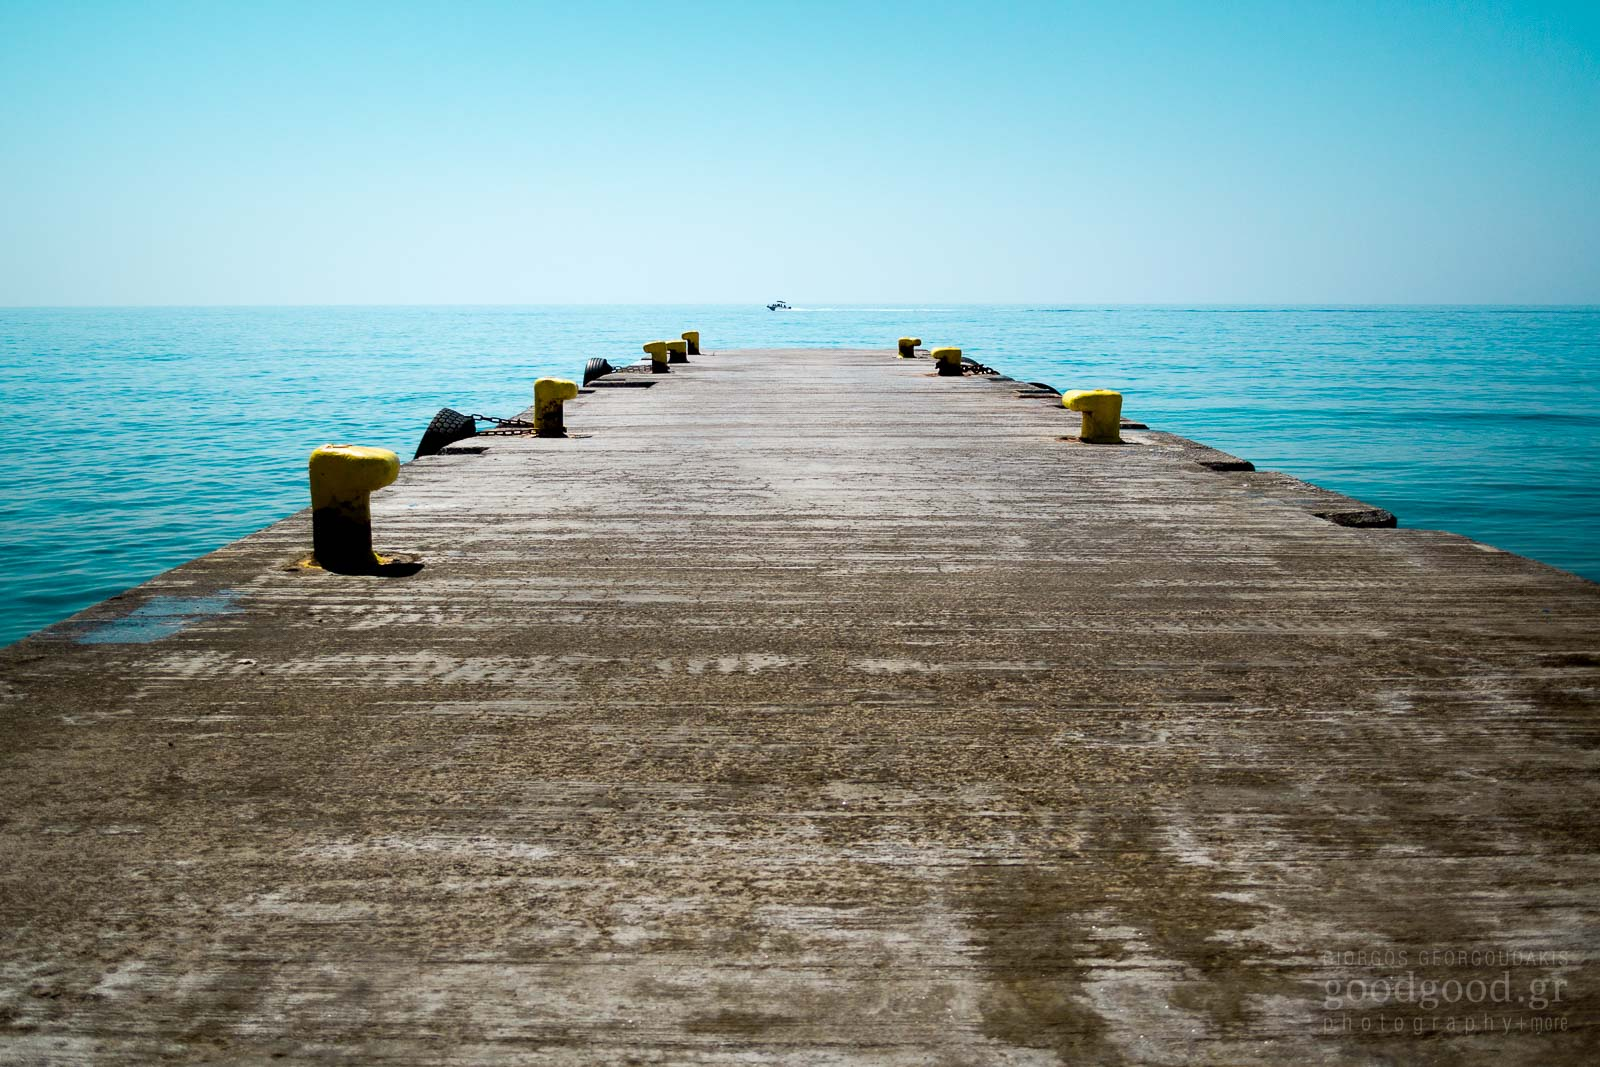 Photograph of a speedboat crossing the horizon in front of a dock